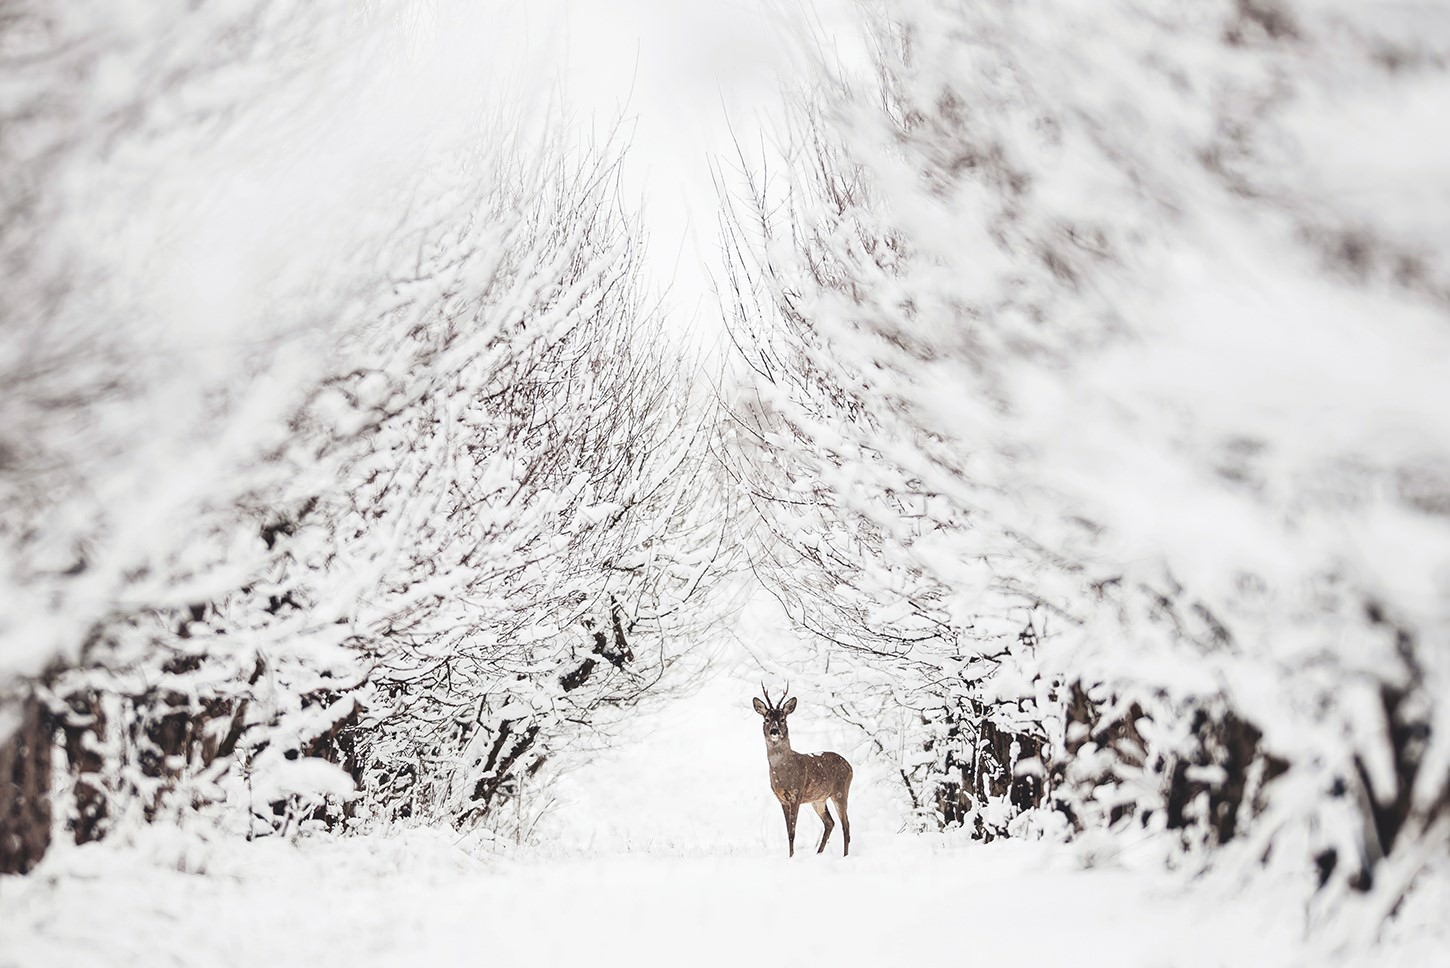 a deer stands on a path in a snowy forest